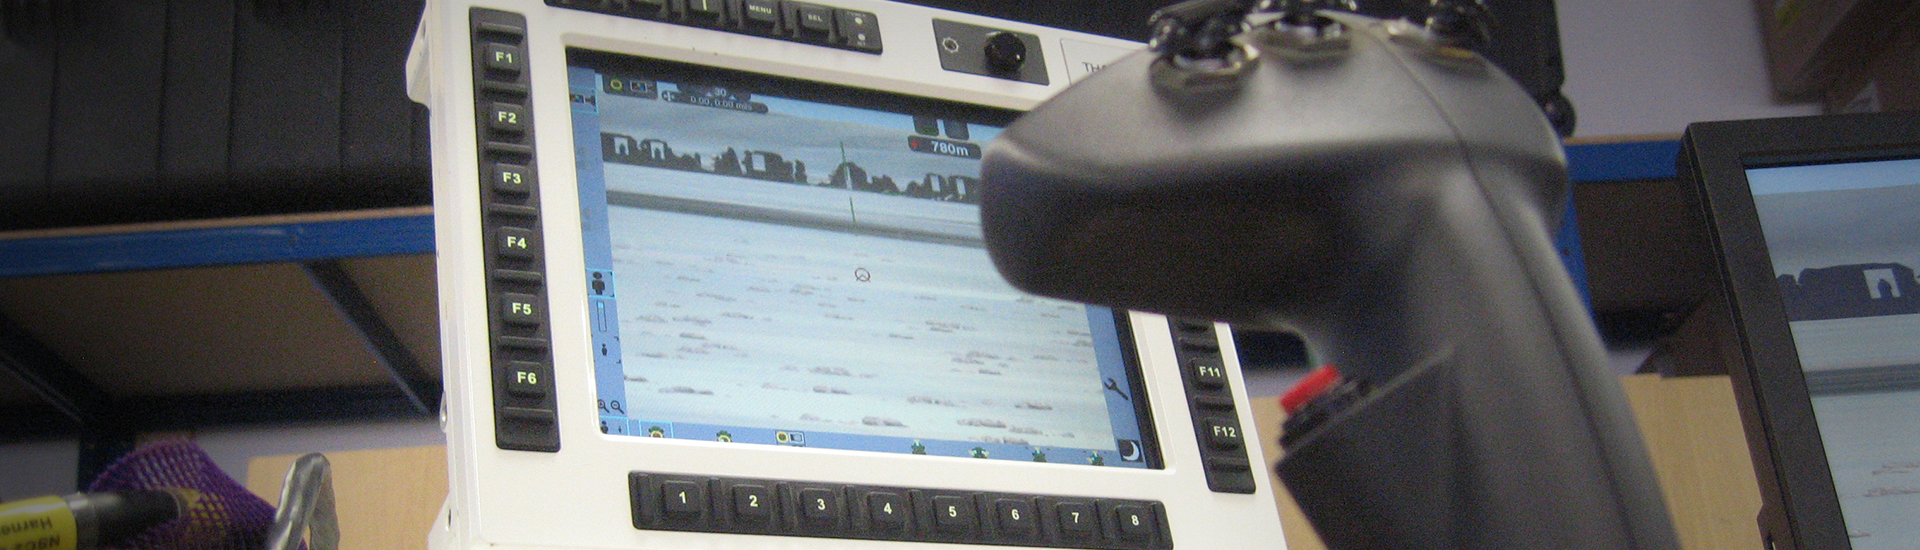 ADWS controller and screen